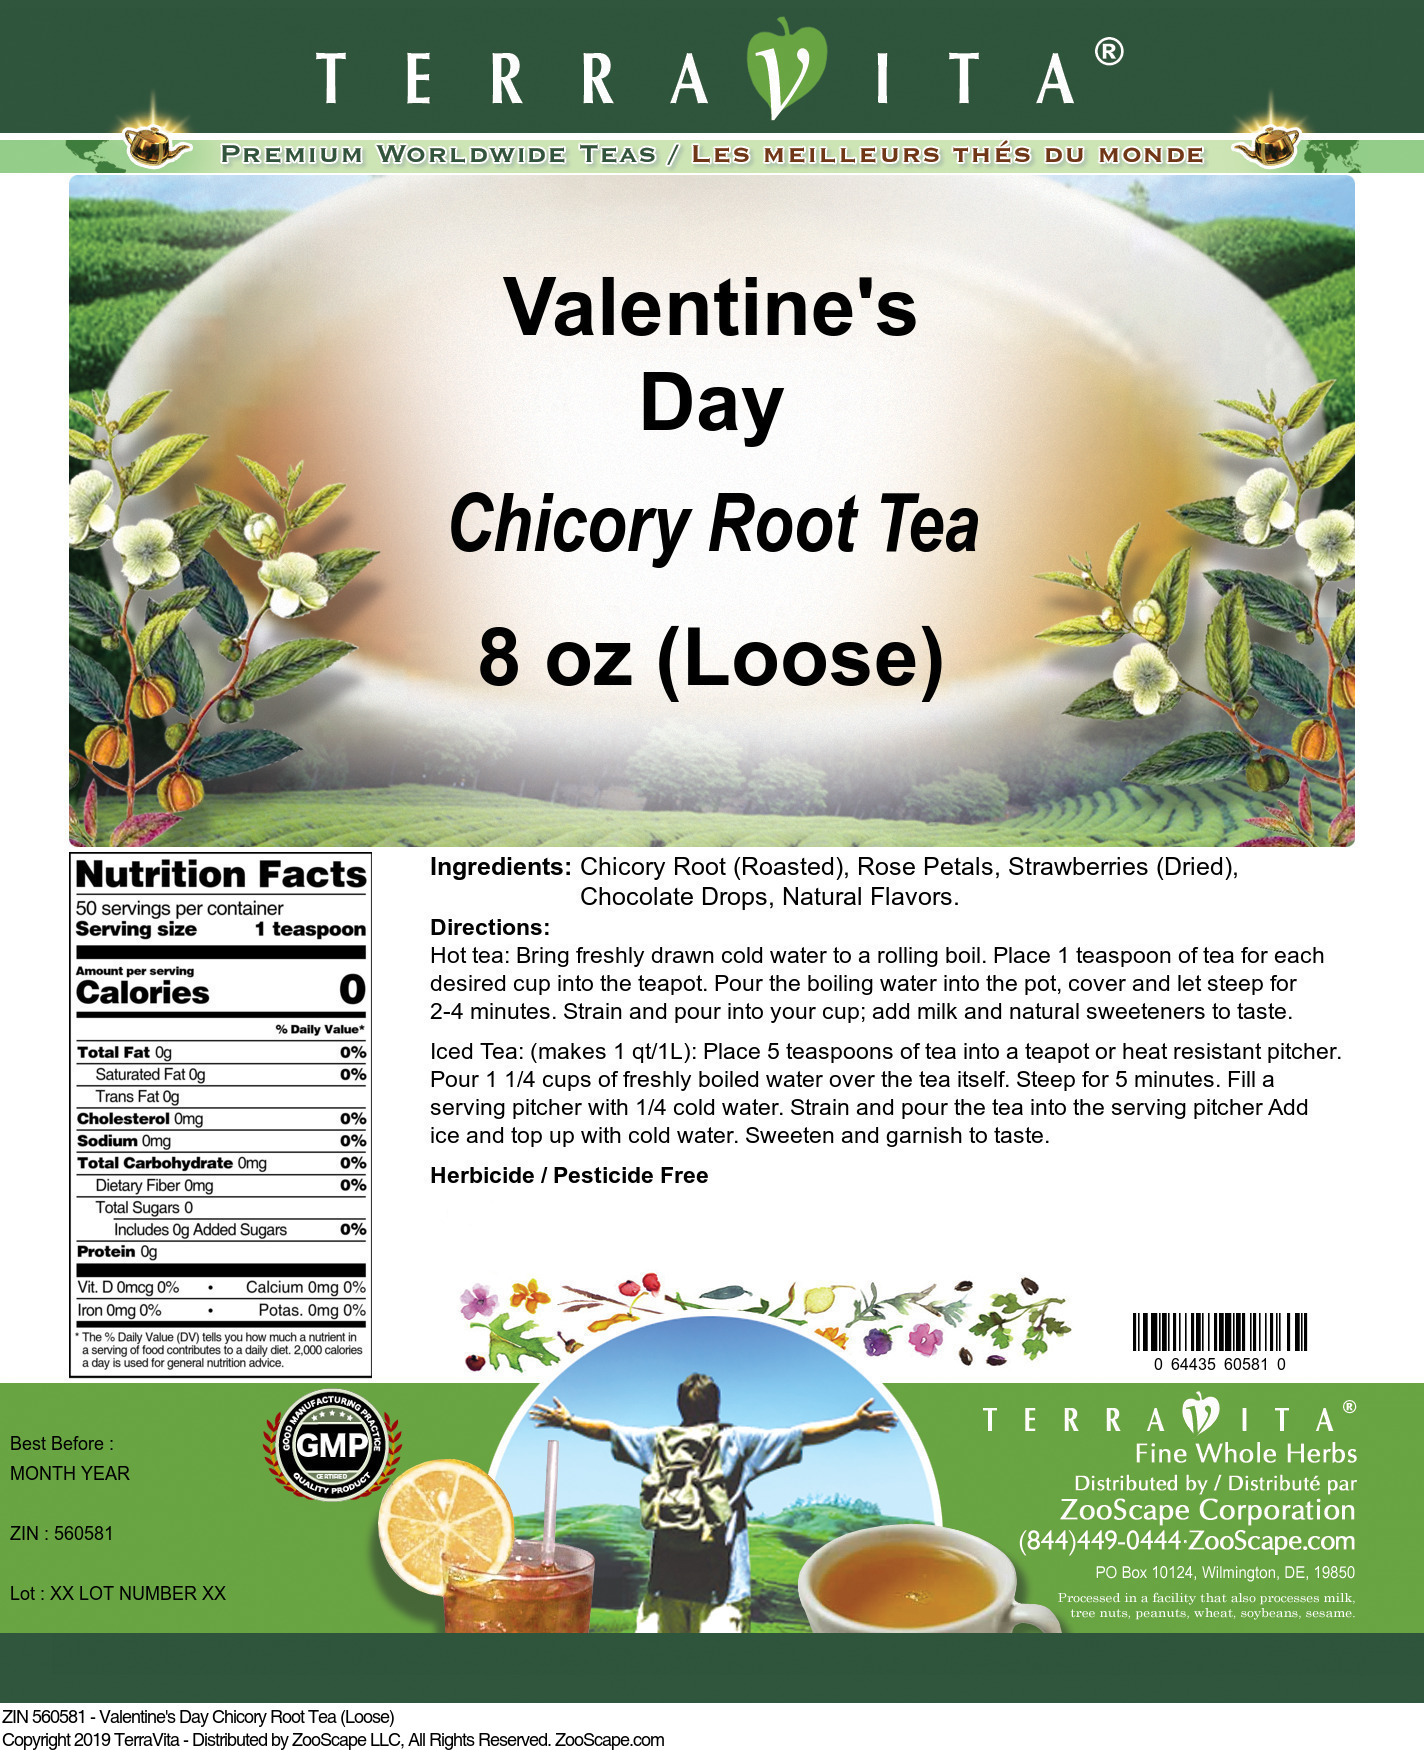 Valentine's Day Chicory Root Tea (Loose)